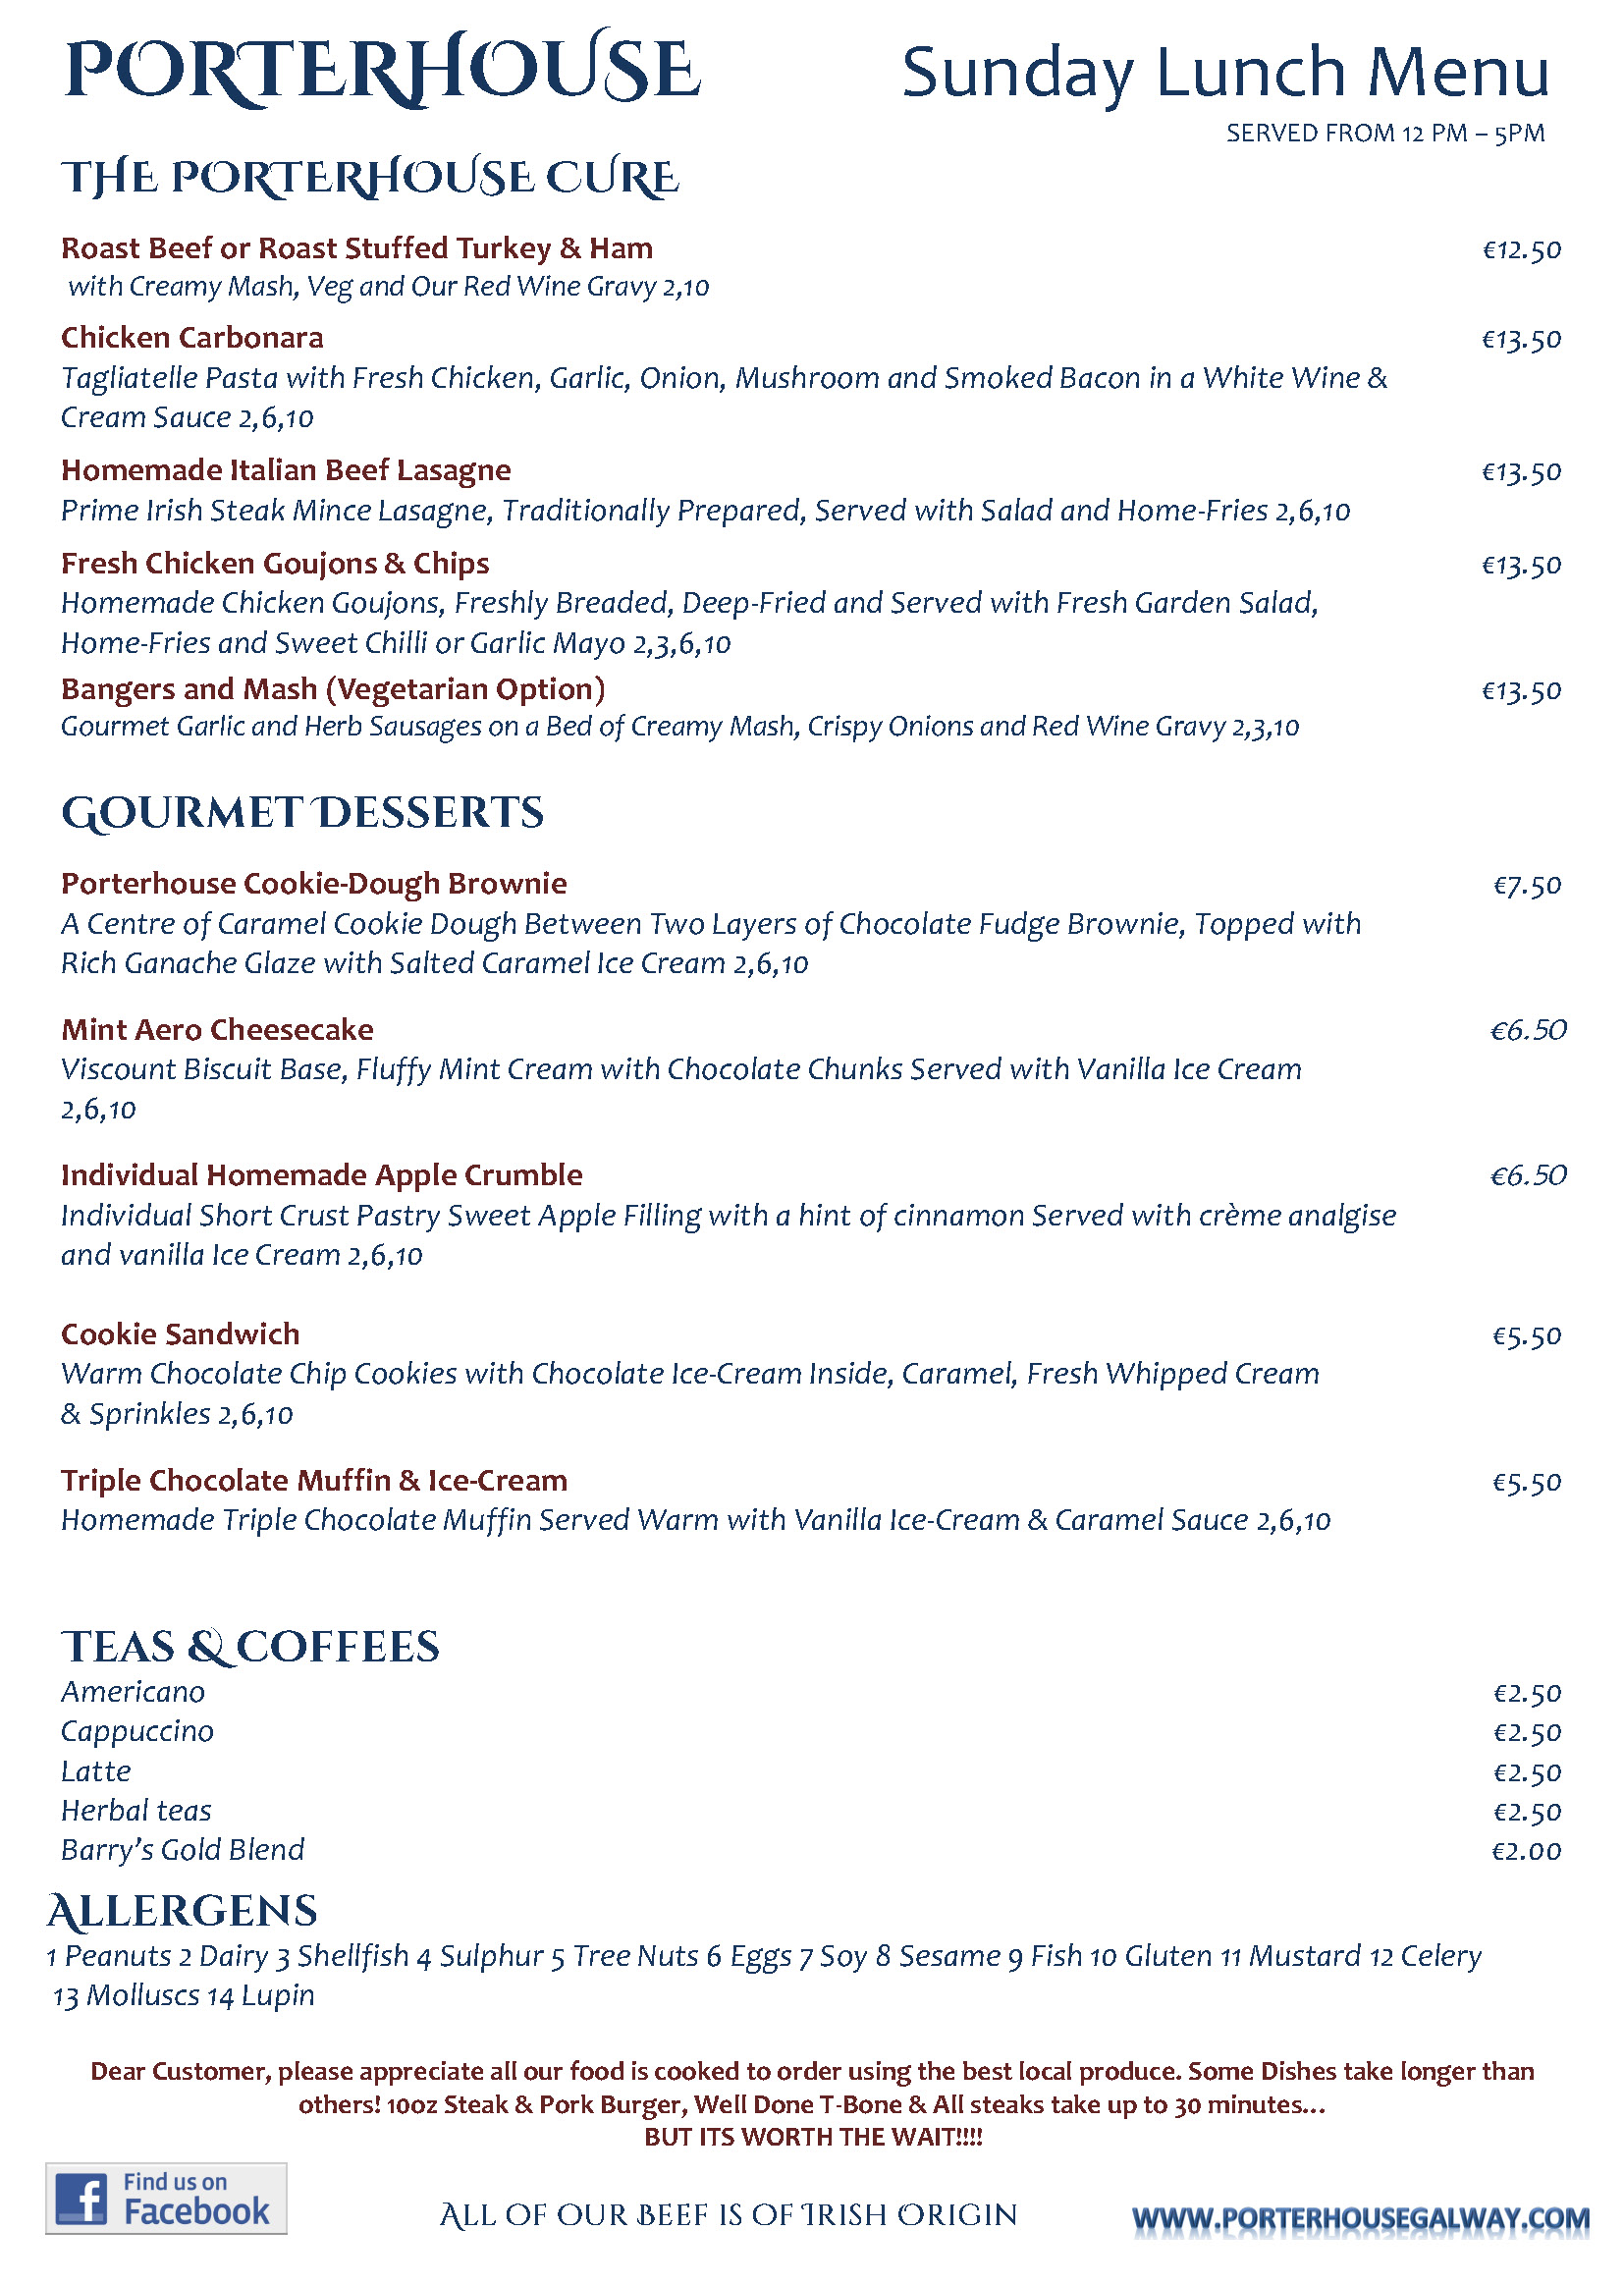 Porterhouse Galway - SundayLunch Menu - Final 19.07.2018_Page_4.jpg